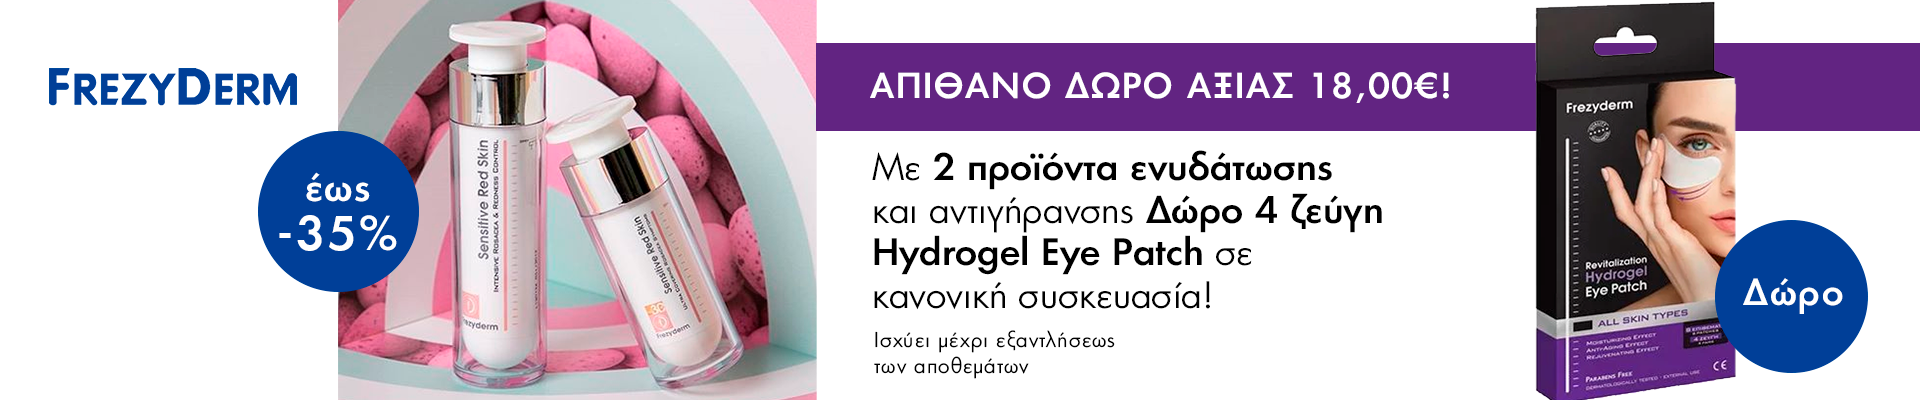 Frezyderm Δωρο Eye Patches 18/2/20